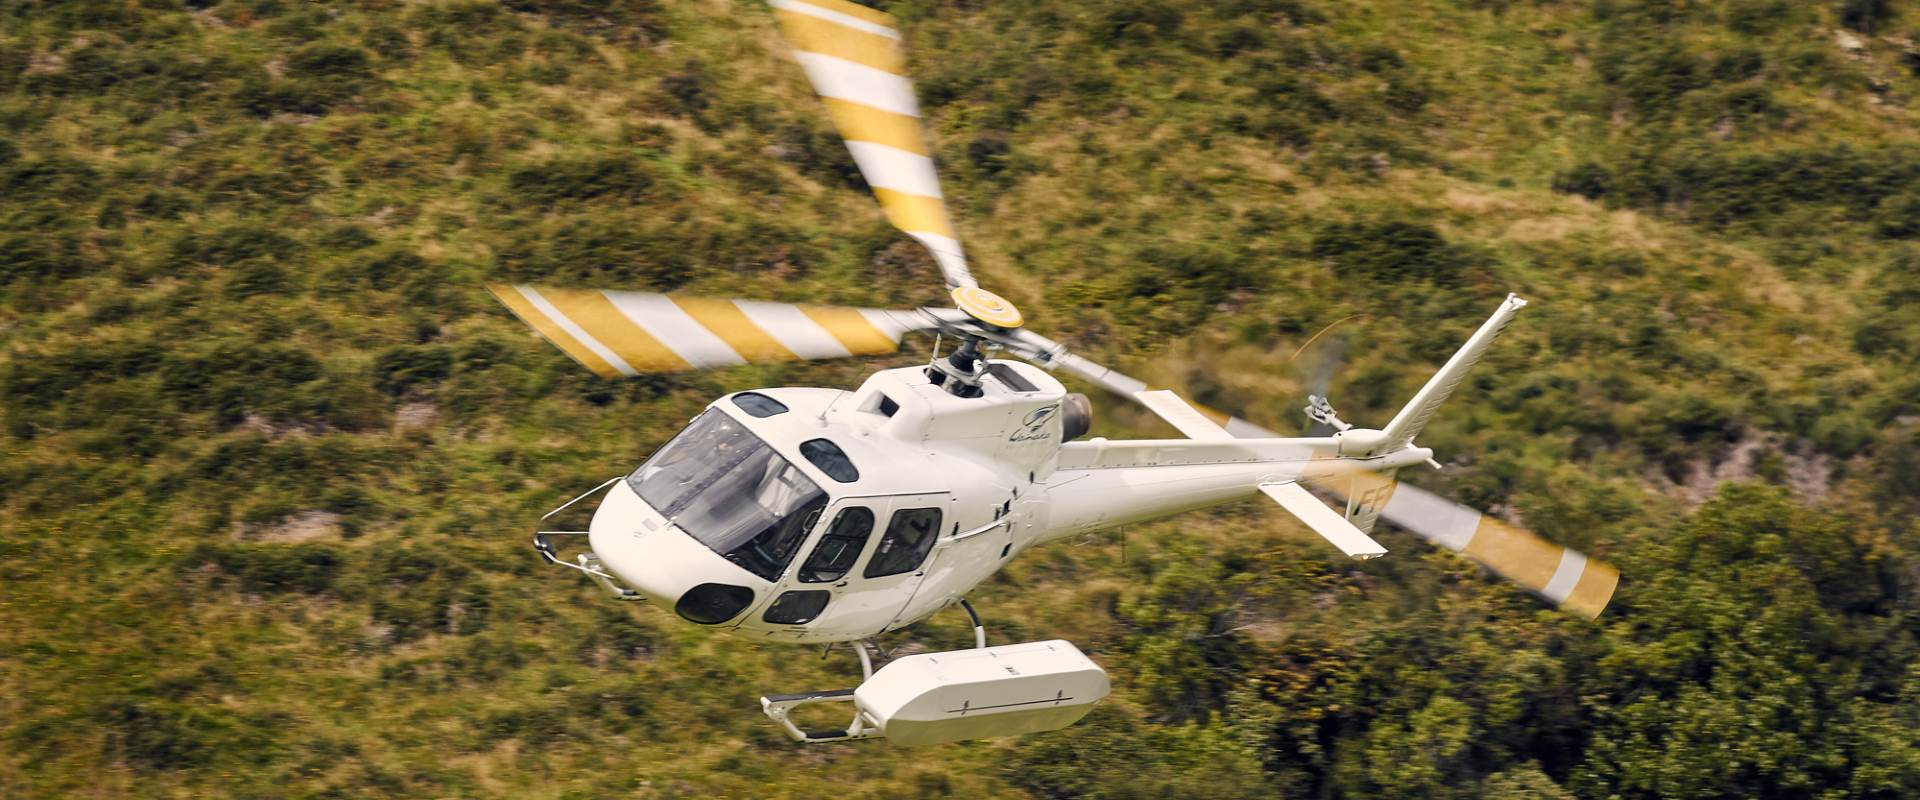 Commercial - Charter Helicopter Services